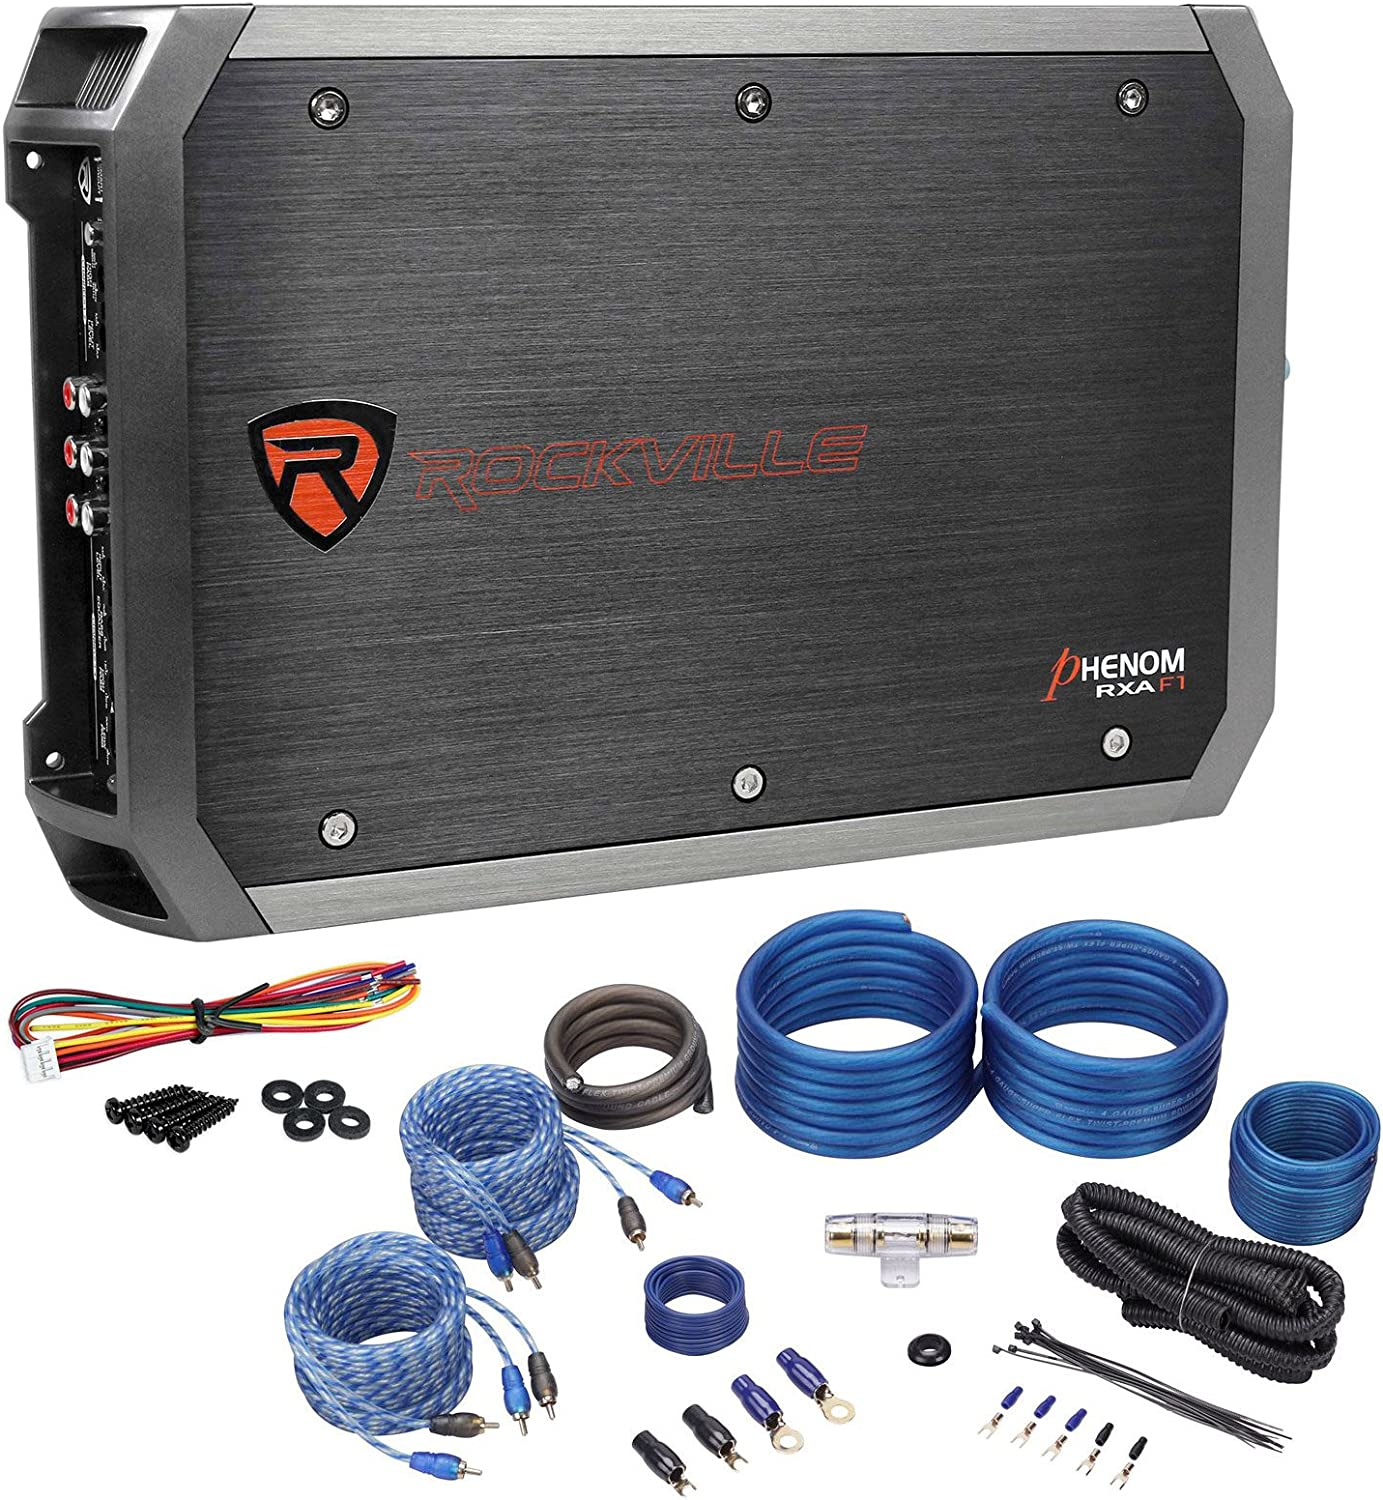 NEW 4channel Car Stereo Speaker Amplifier.Power Sound System.Subwoofer.1600w.